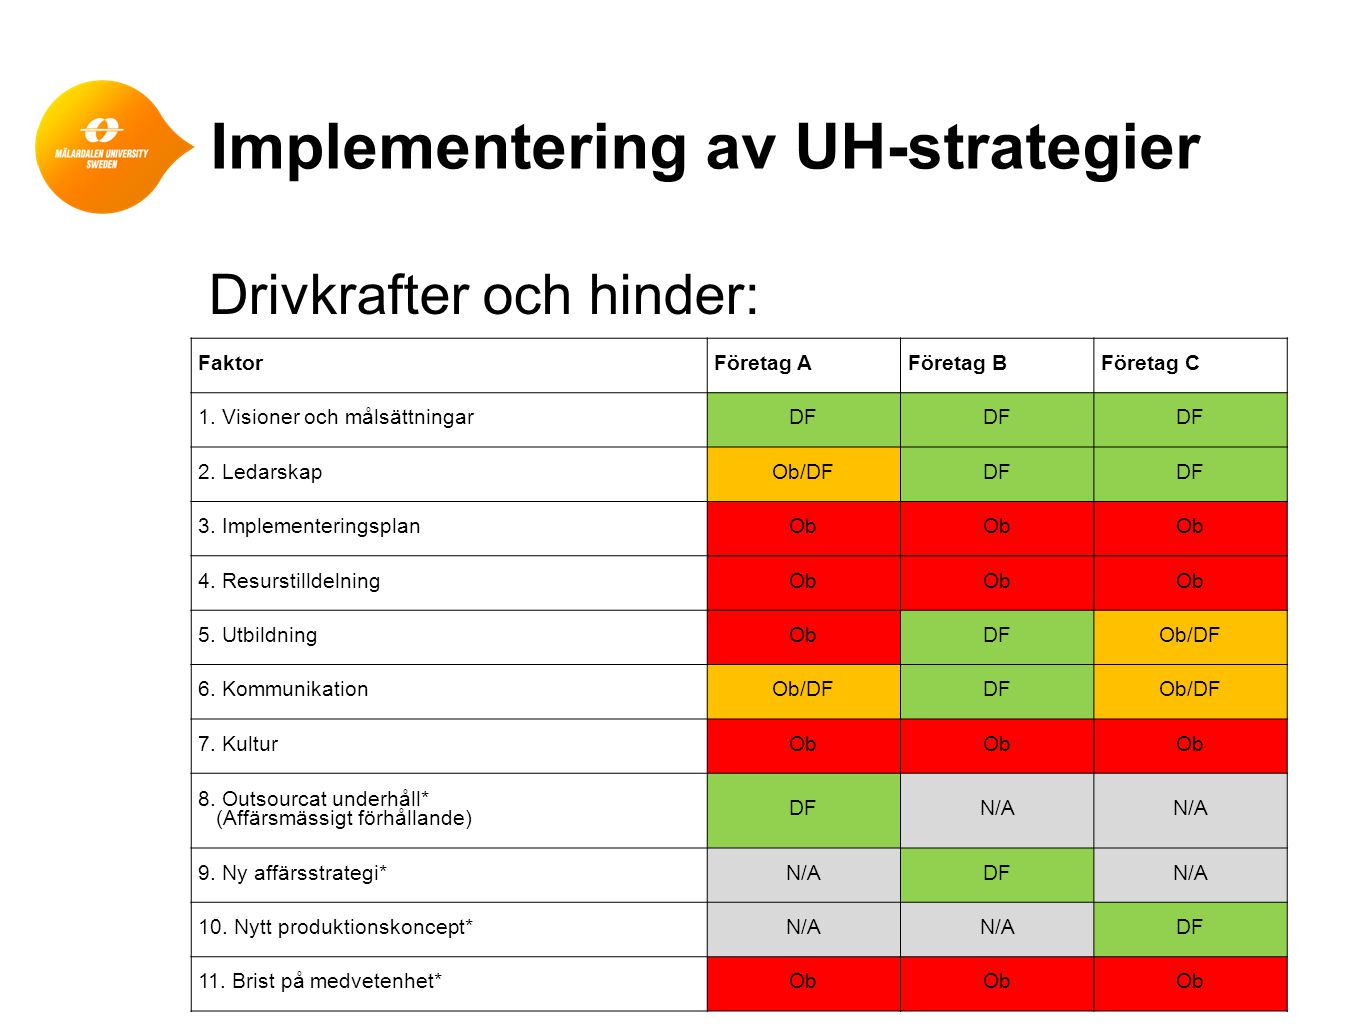 Implementering av UH-strategier